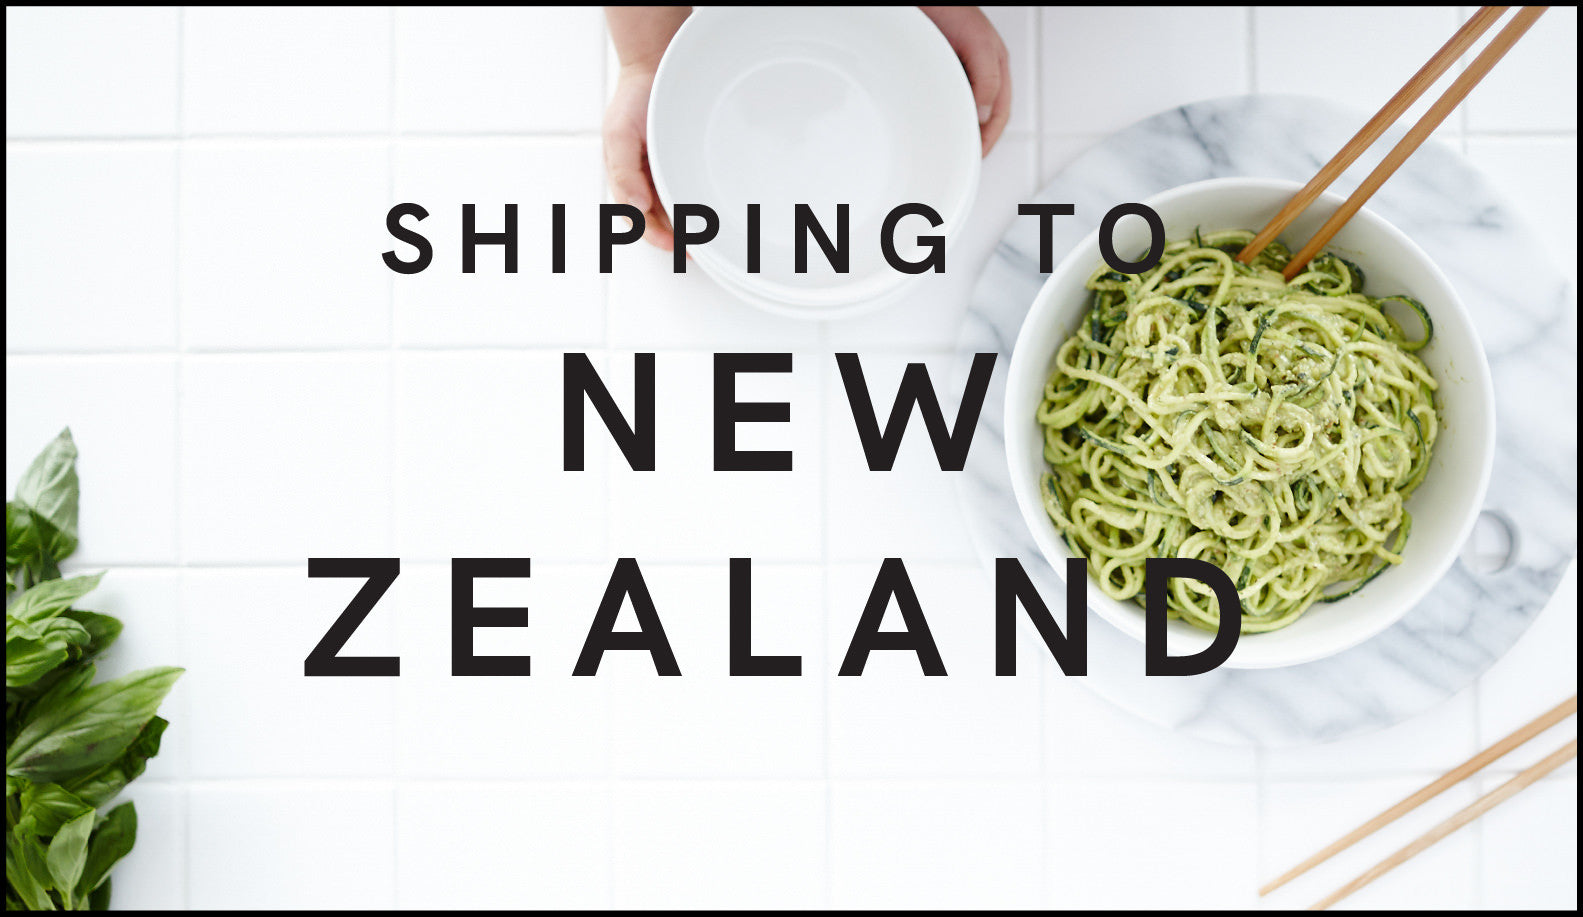 Shipping to New Zealand